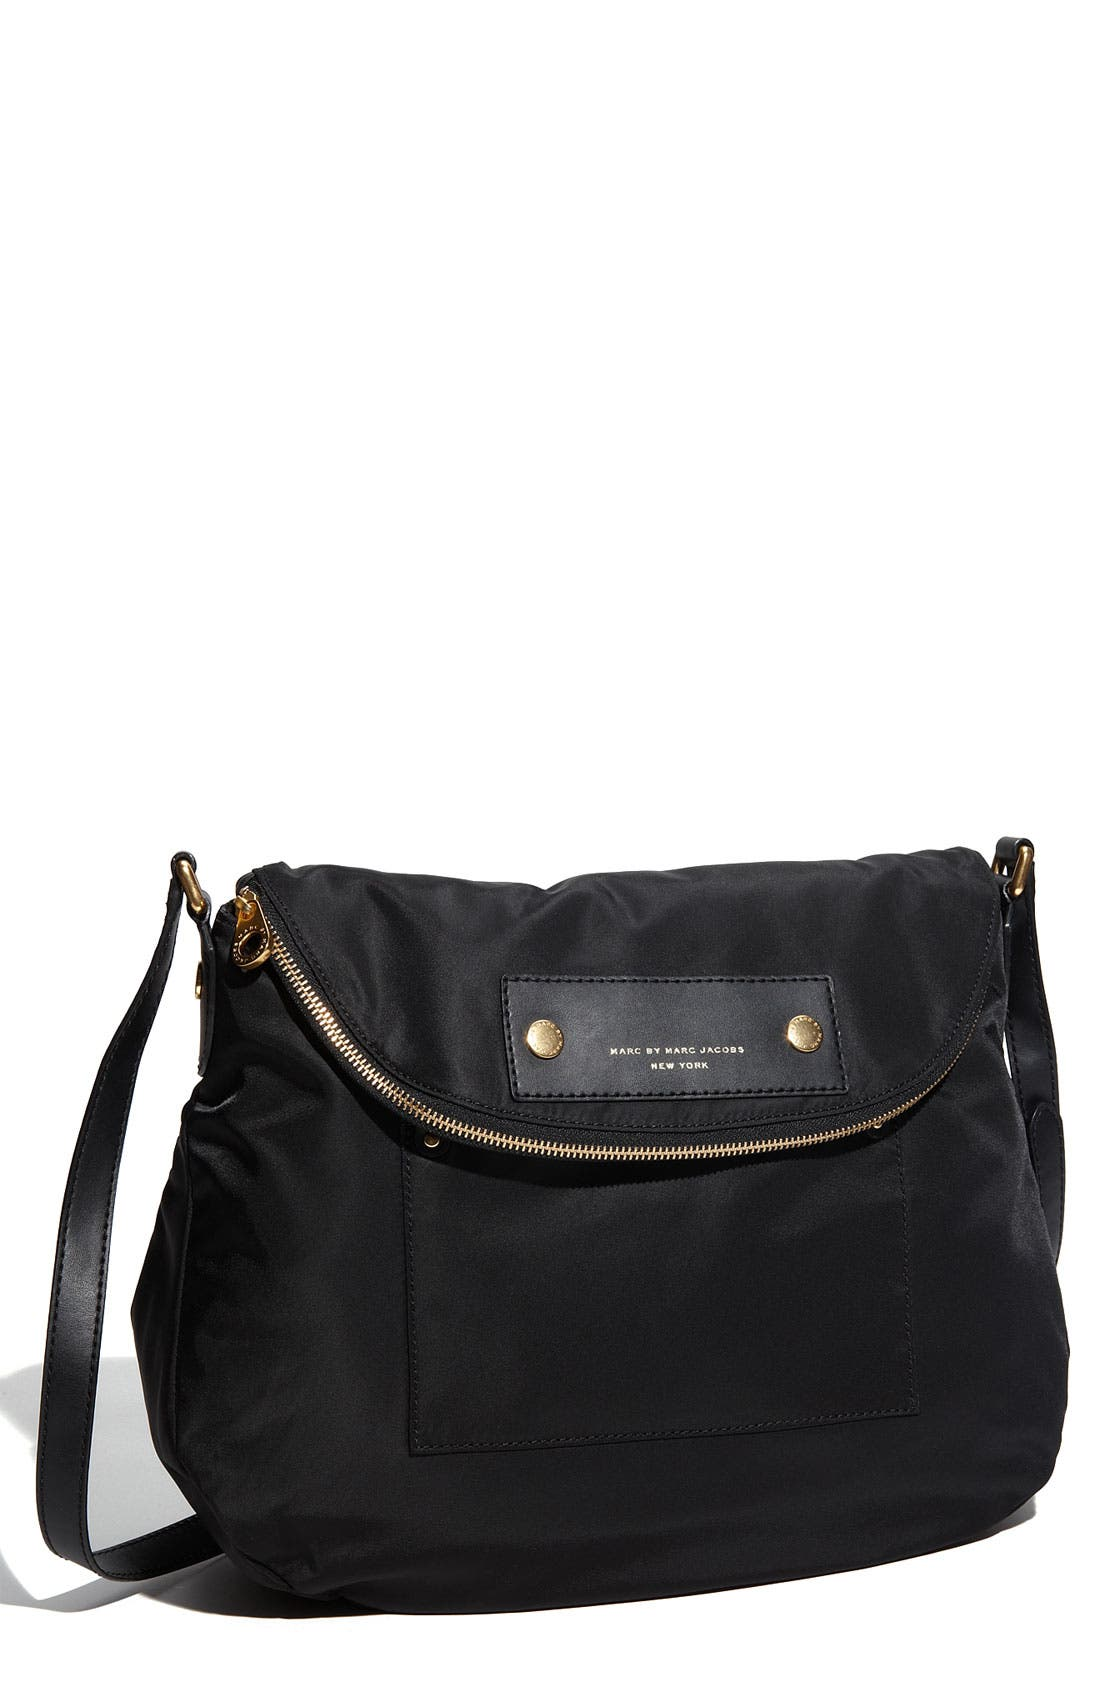 Main Image - MARC BY MARC JACOBS 'Preppy Nylon Sasha' Crossbody Bag